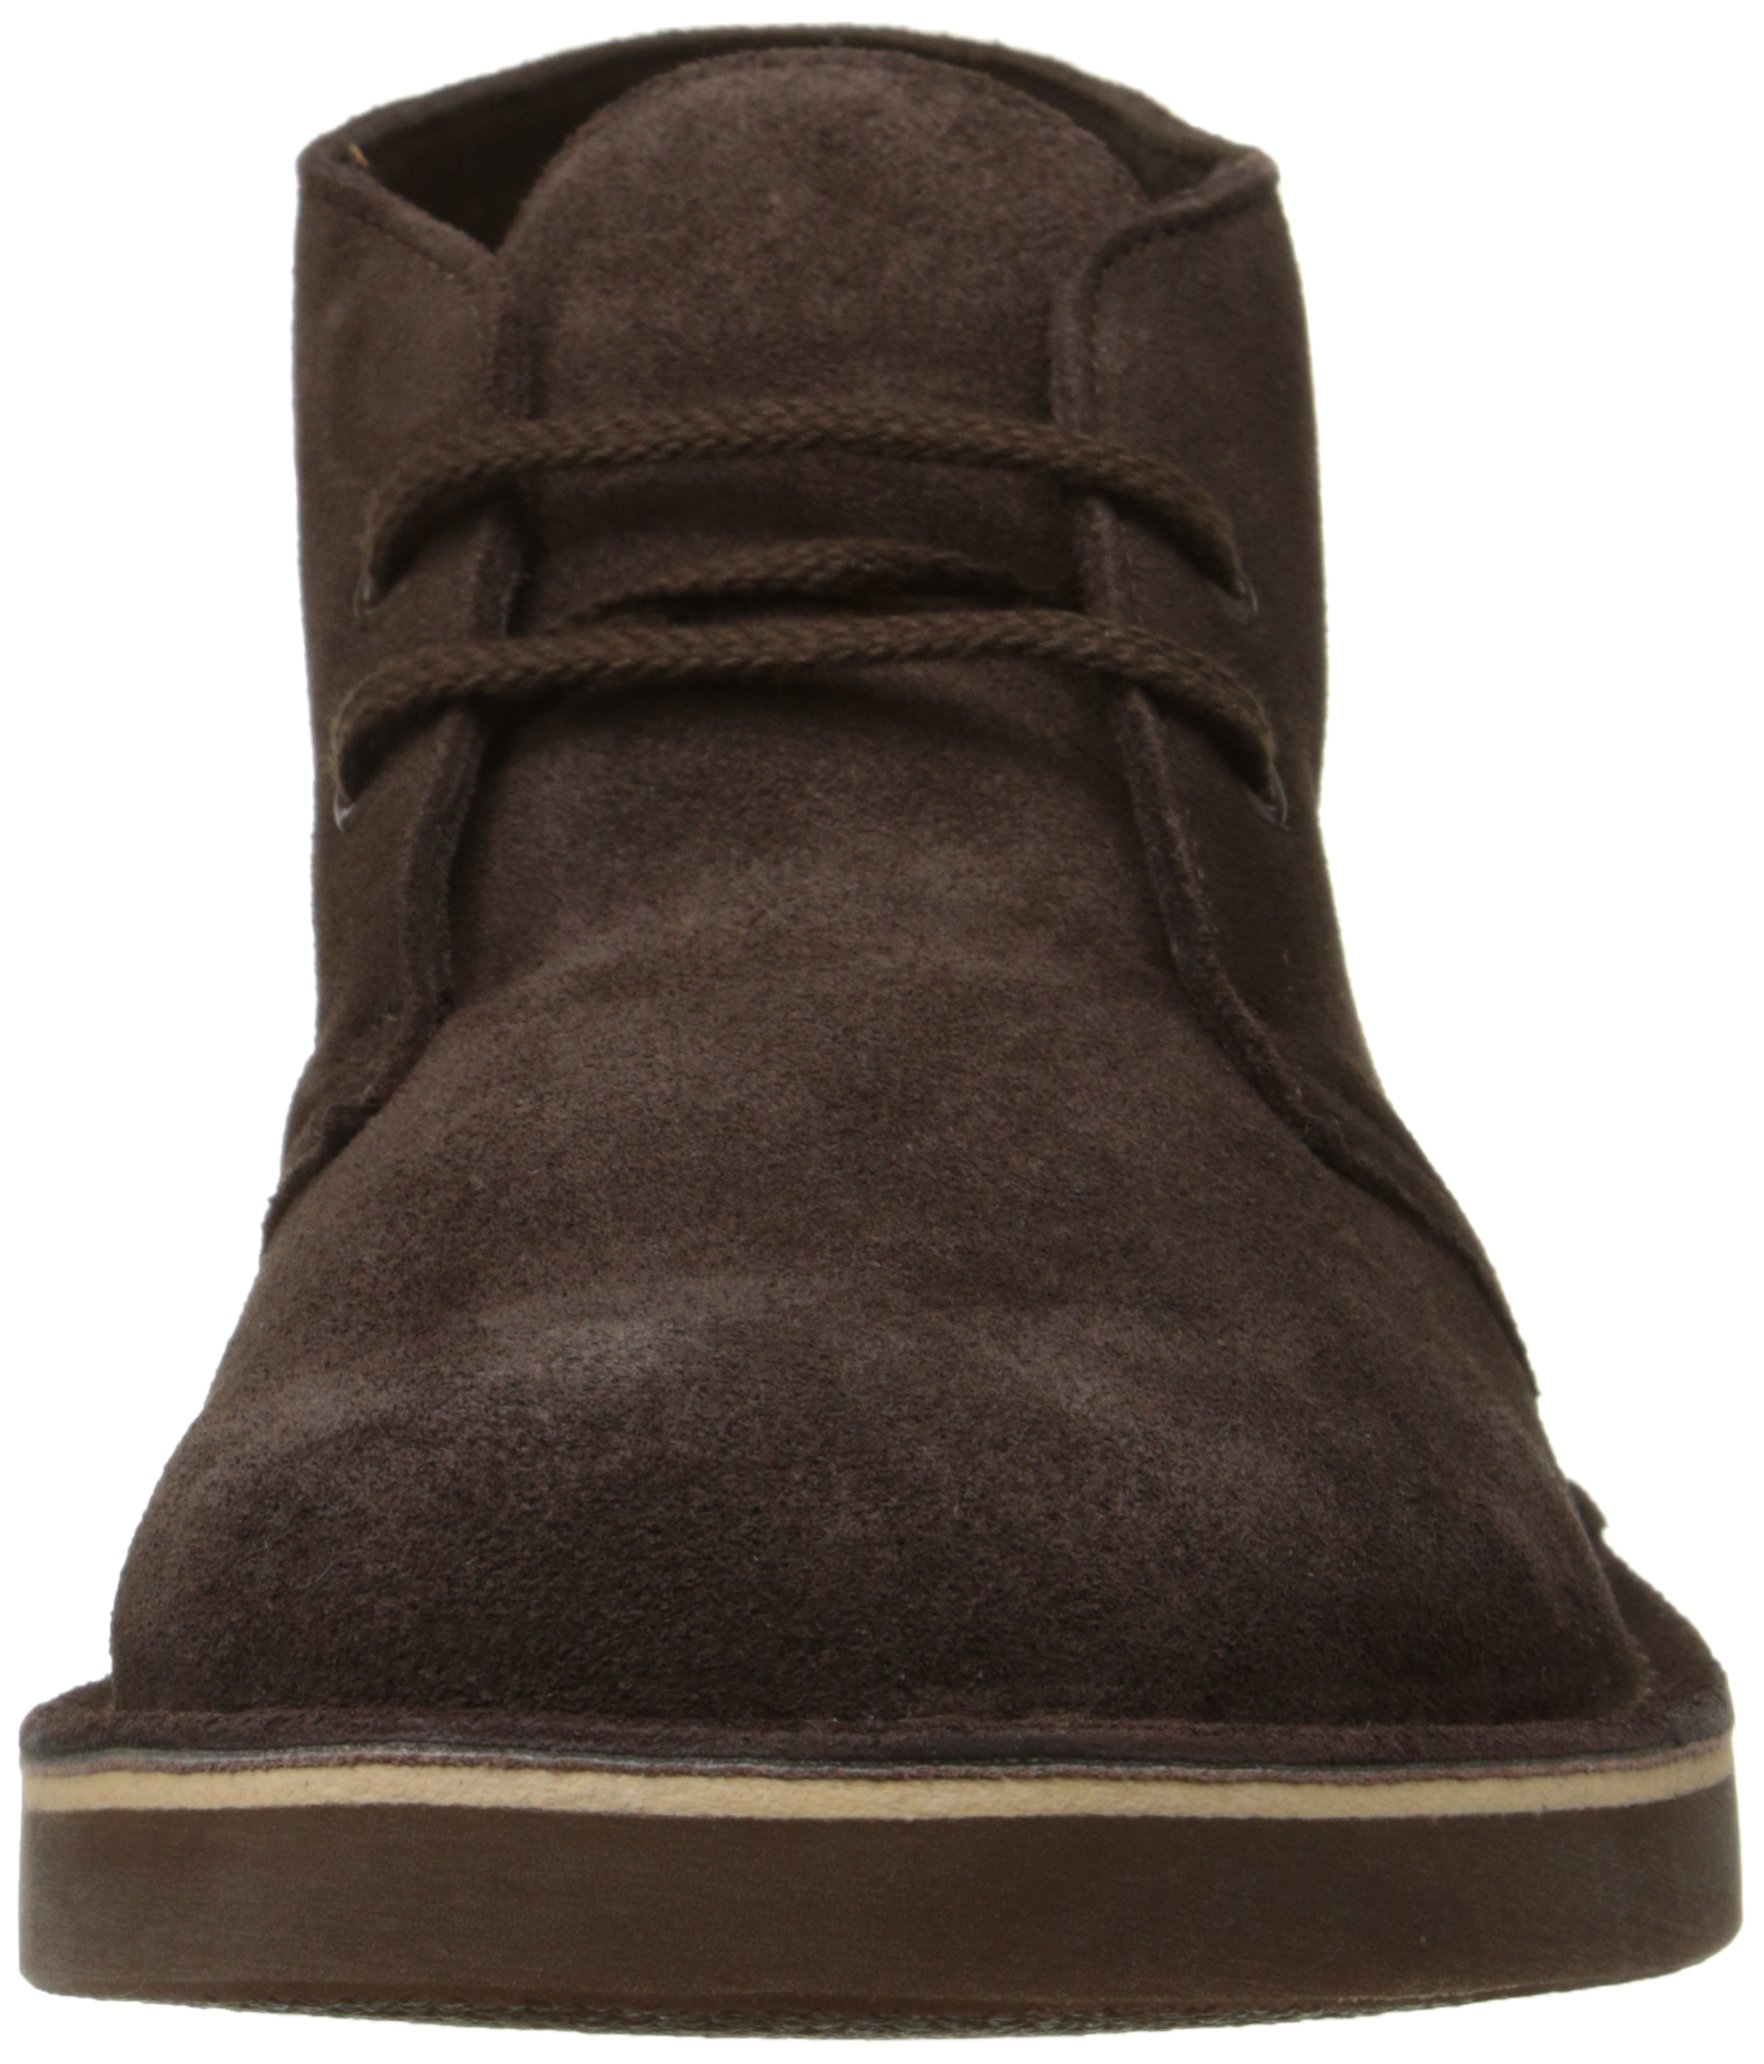 Clarks Men's Bushacre 2 Chukka Boot,Brown Suede,13 M US by CLARKS (Image #4)